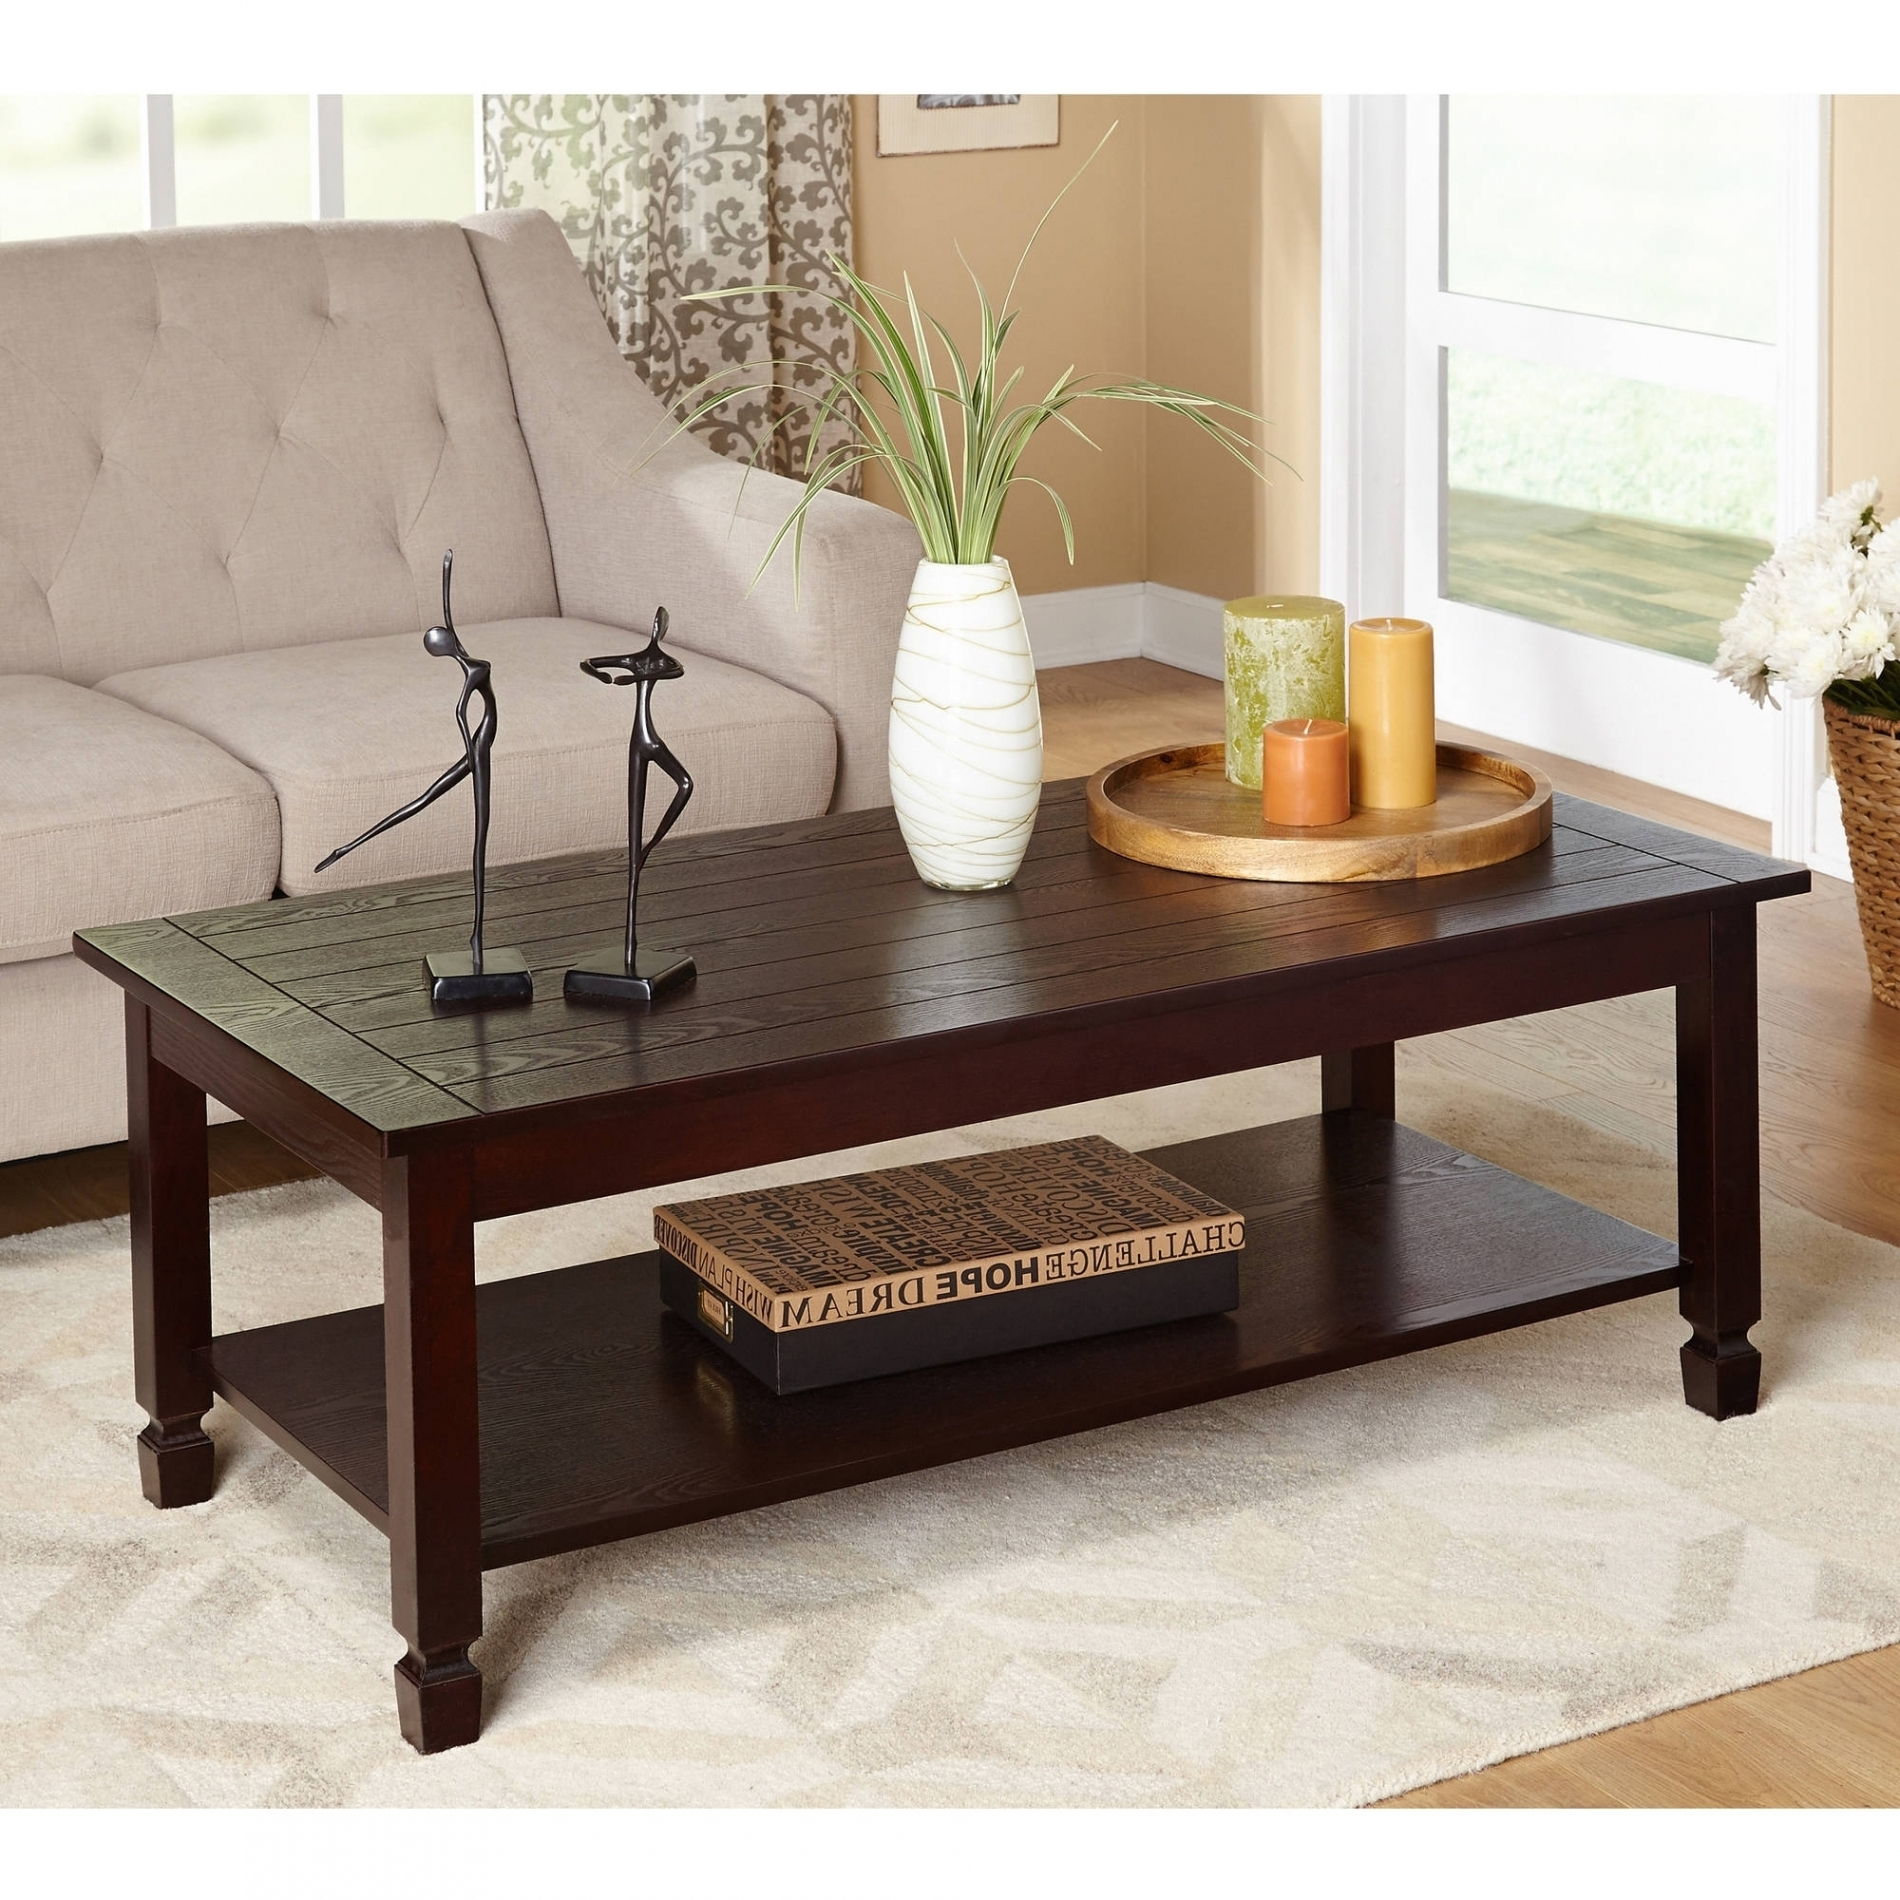 royal furniture probably terrific ashley marble delightful coffee table sets accent tables round engaging perfect for your living room with shower end nightstand charging station